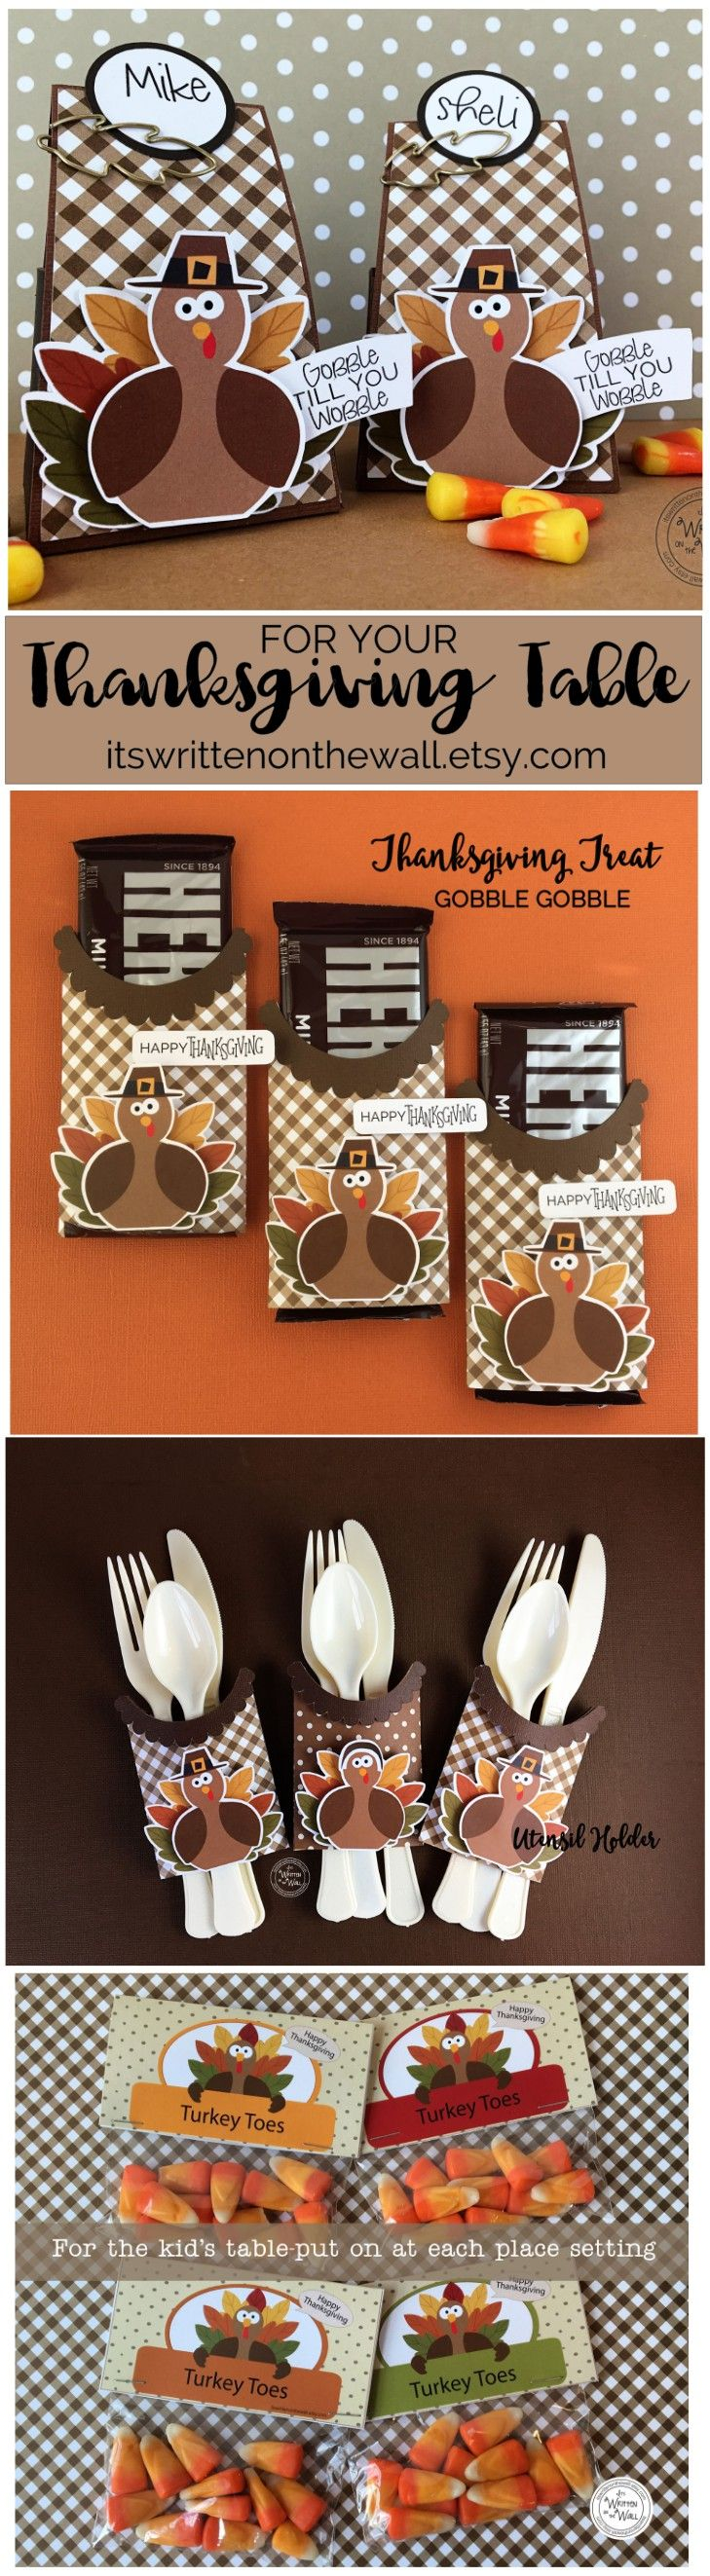 Dress up the kids and adult Thanksgiving table. Candy bar wraps, utensil holders, personalized place card/treat boxes and Turkey Toes